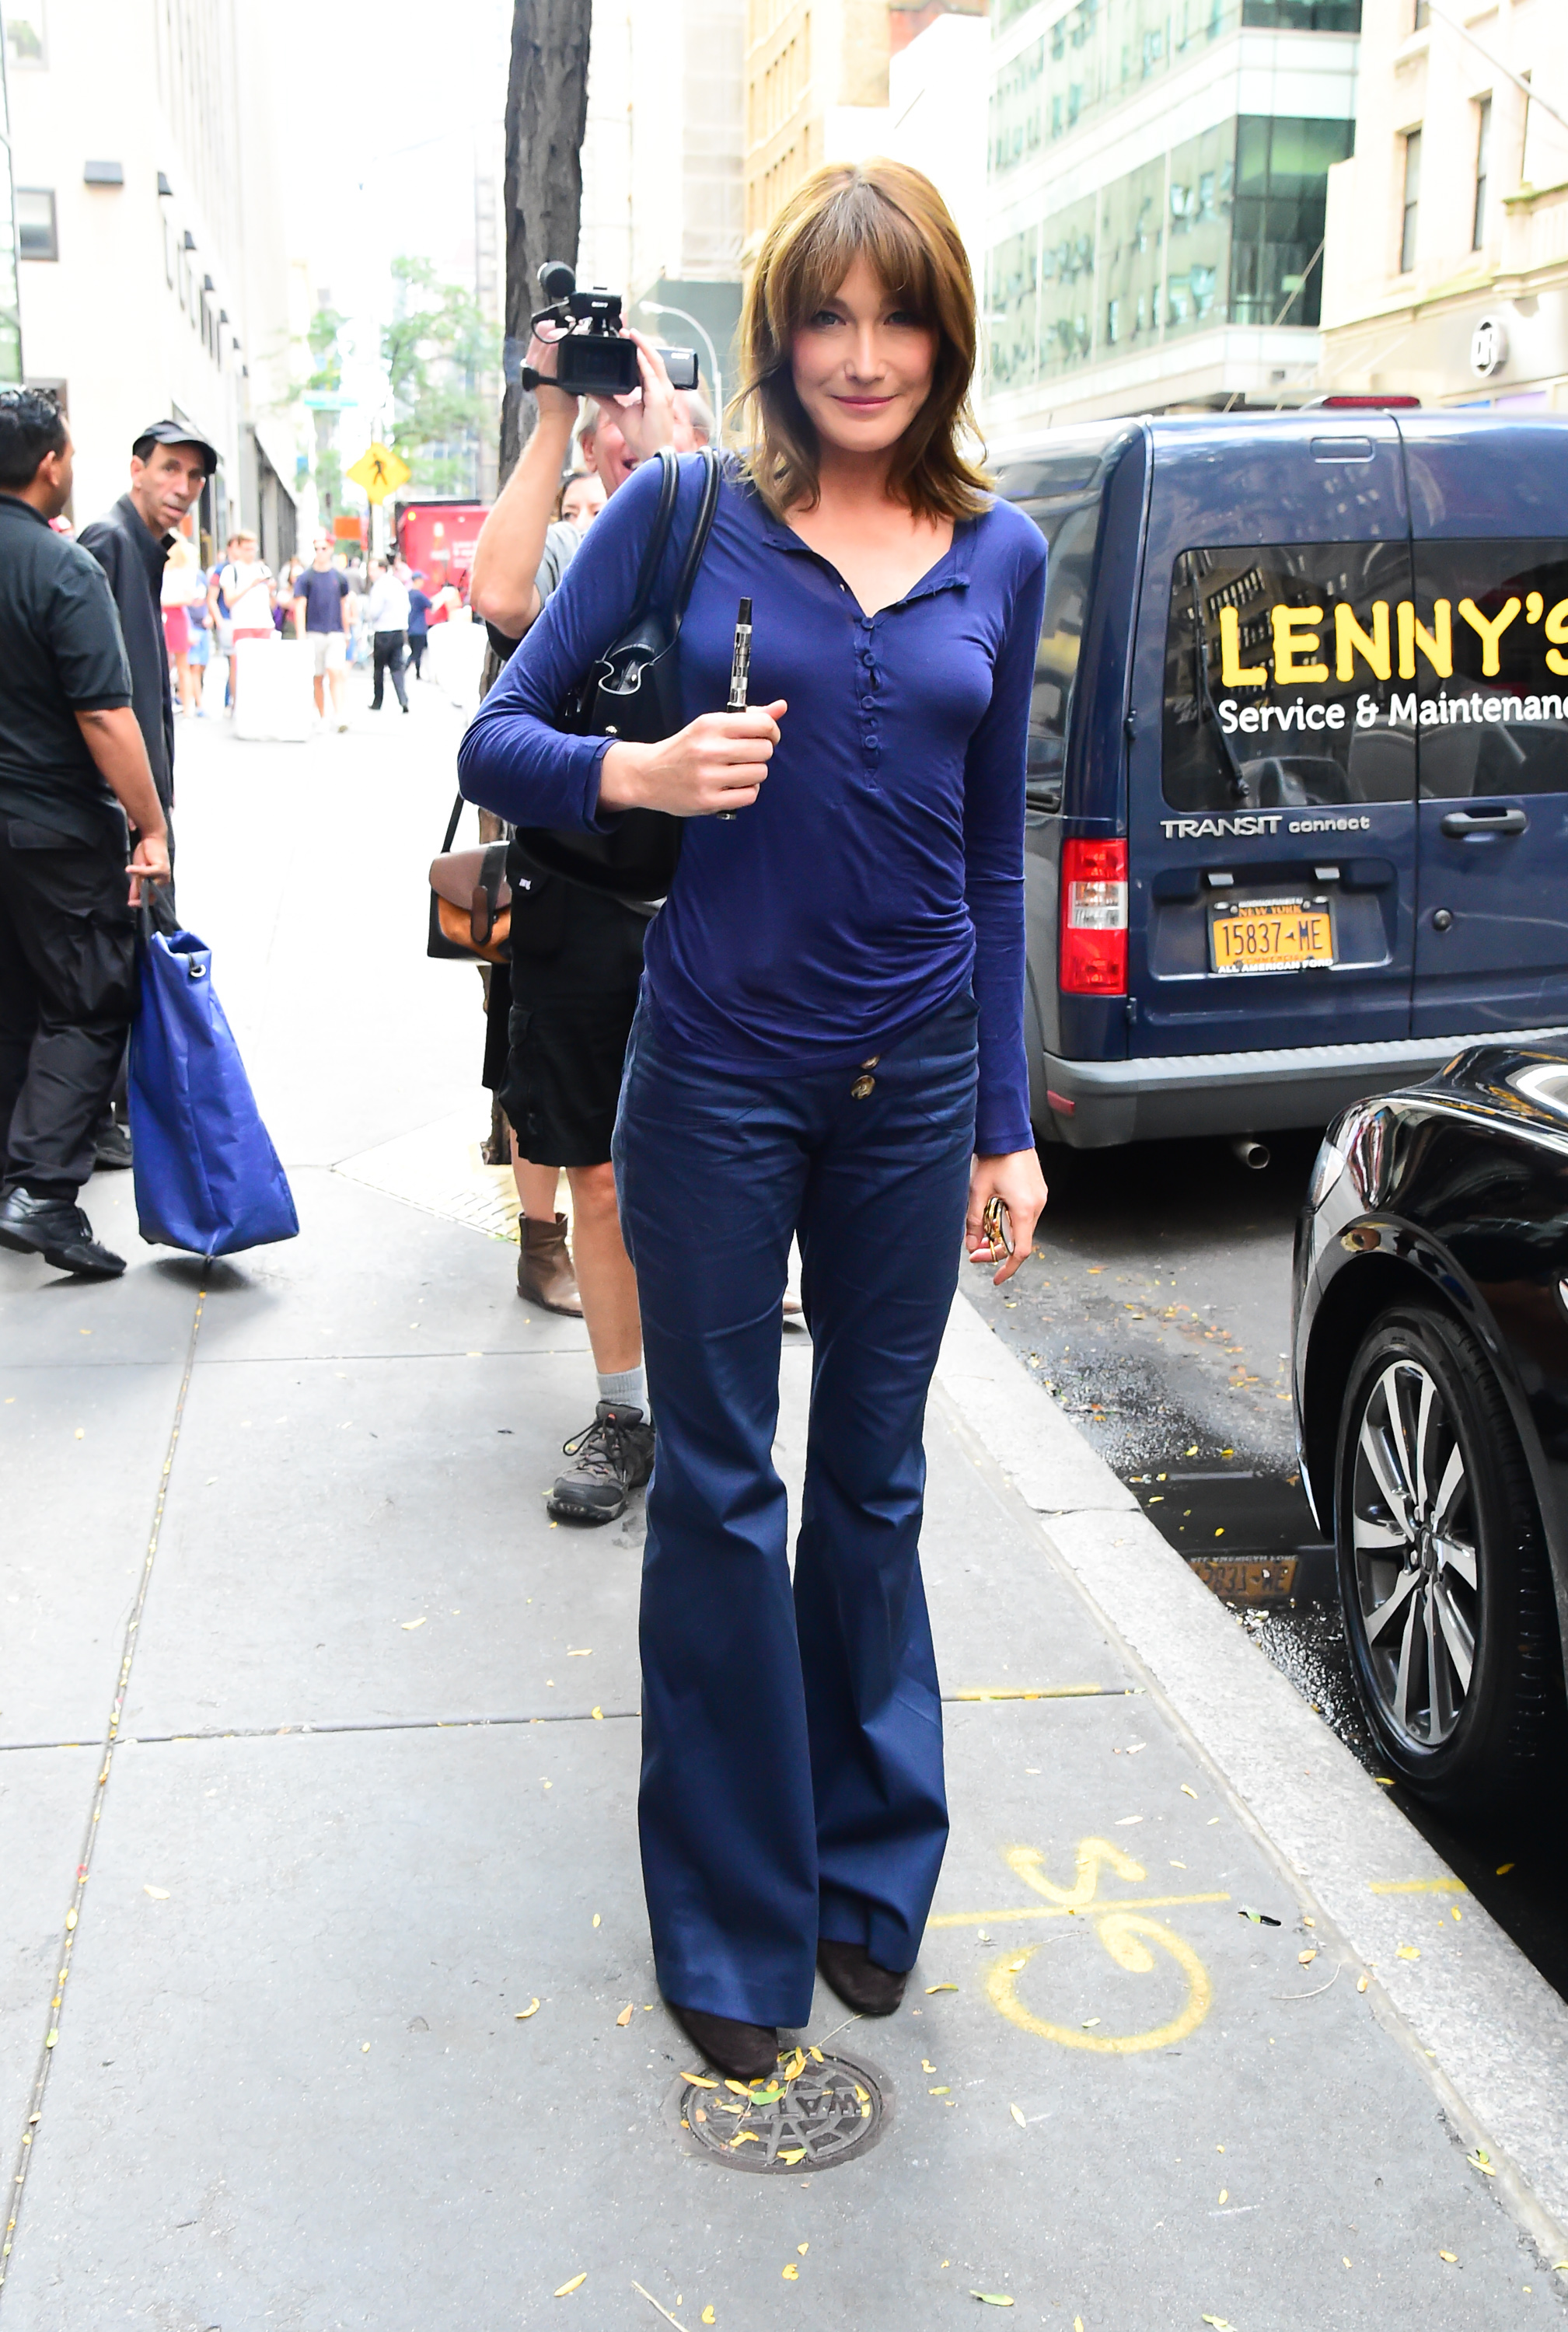 Model Carla Bruni leaving the 'Today' show in New York City, New York, USA.  <P> Pictured: Carla Bruni <B>Ref: SPL1598997  101017  </B><BR/> Picture by: H&H JDHIMAGEZ.COM / Splash News<BR/> </P><P> <B>Splash News and Pictures</B><BR/> Los Angeles:310-821-2666<BR/> New York:212-619-2666<BR/> London:870-934-2666<BR/> <span id=